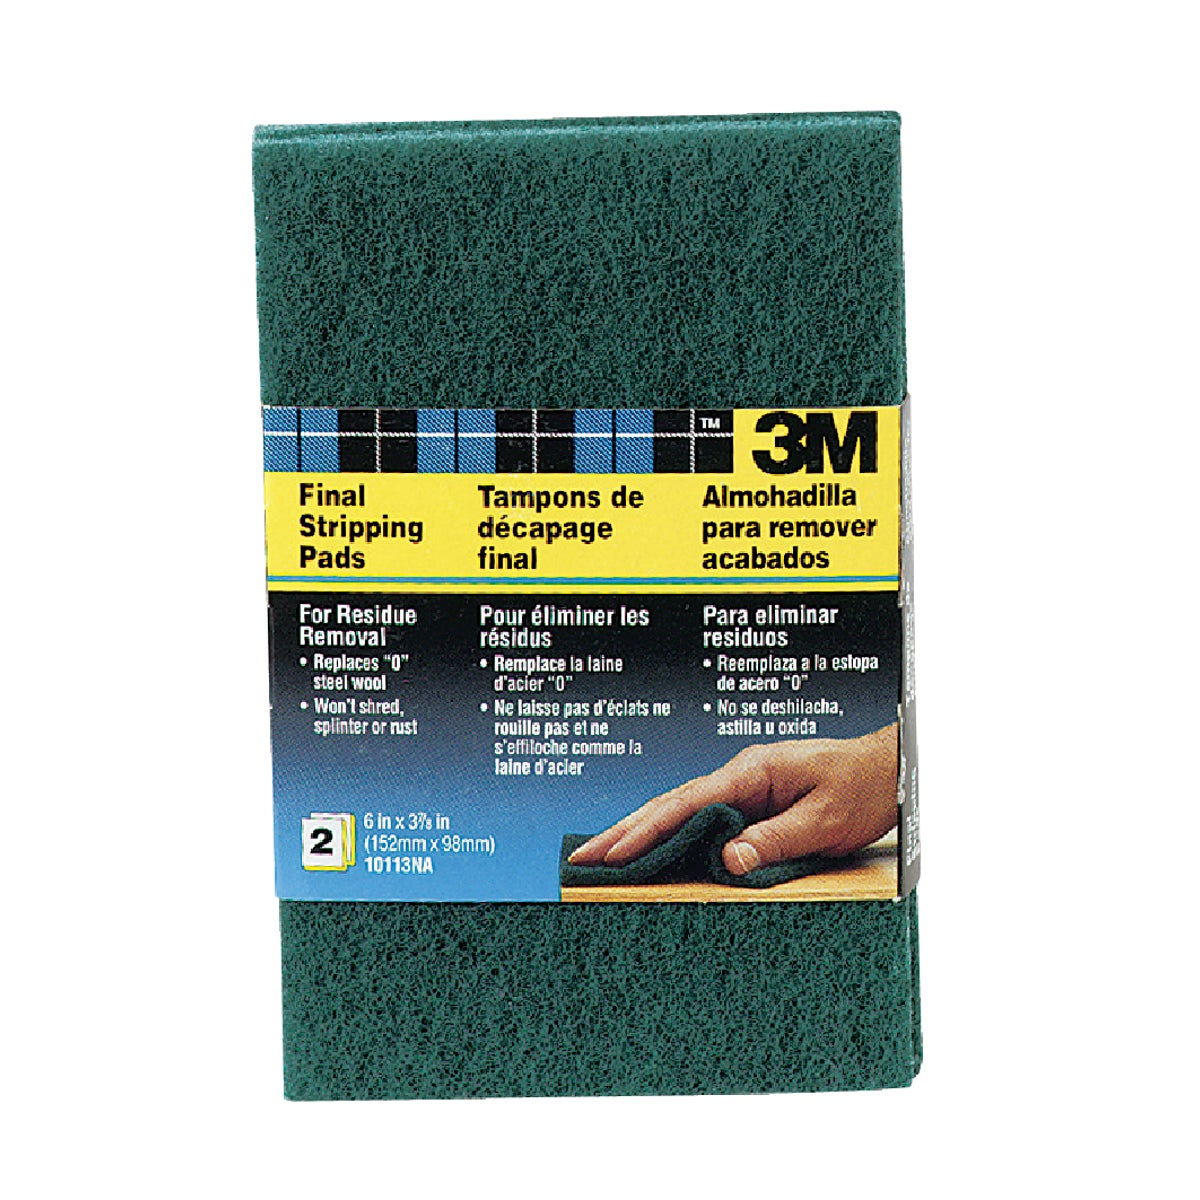 2PK FINAL STRIPPING PADS - 10113NA by 3m Co